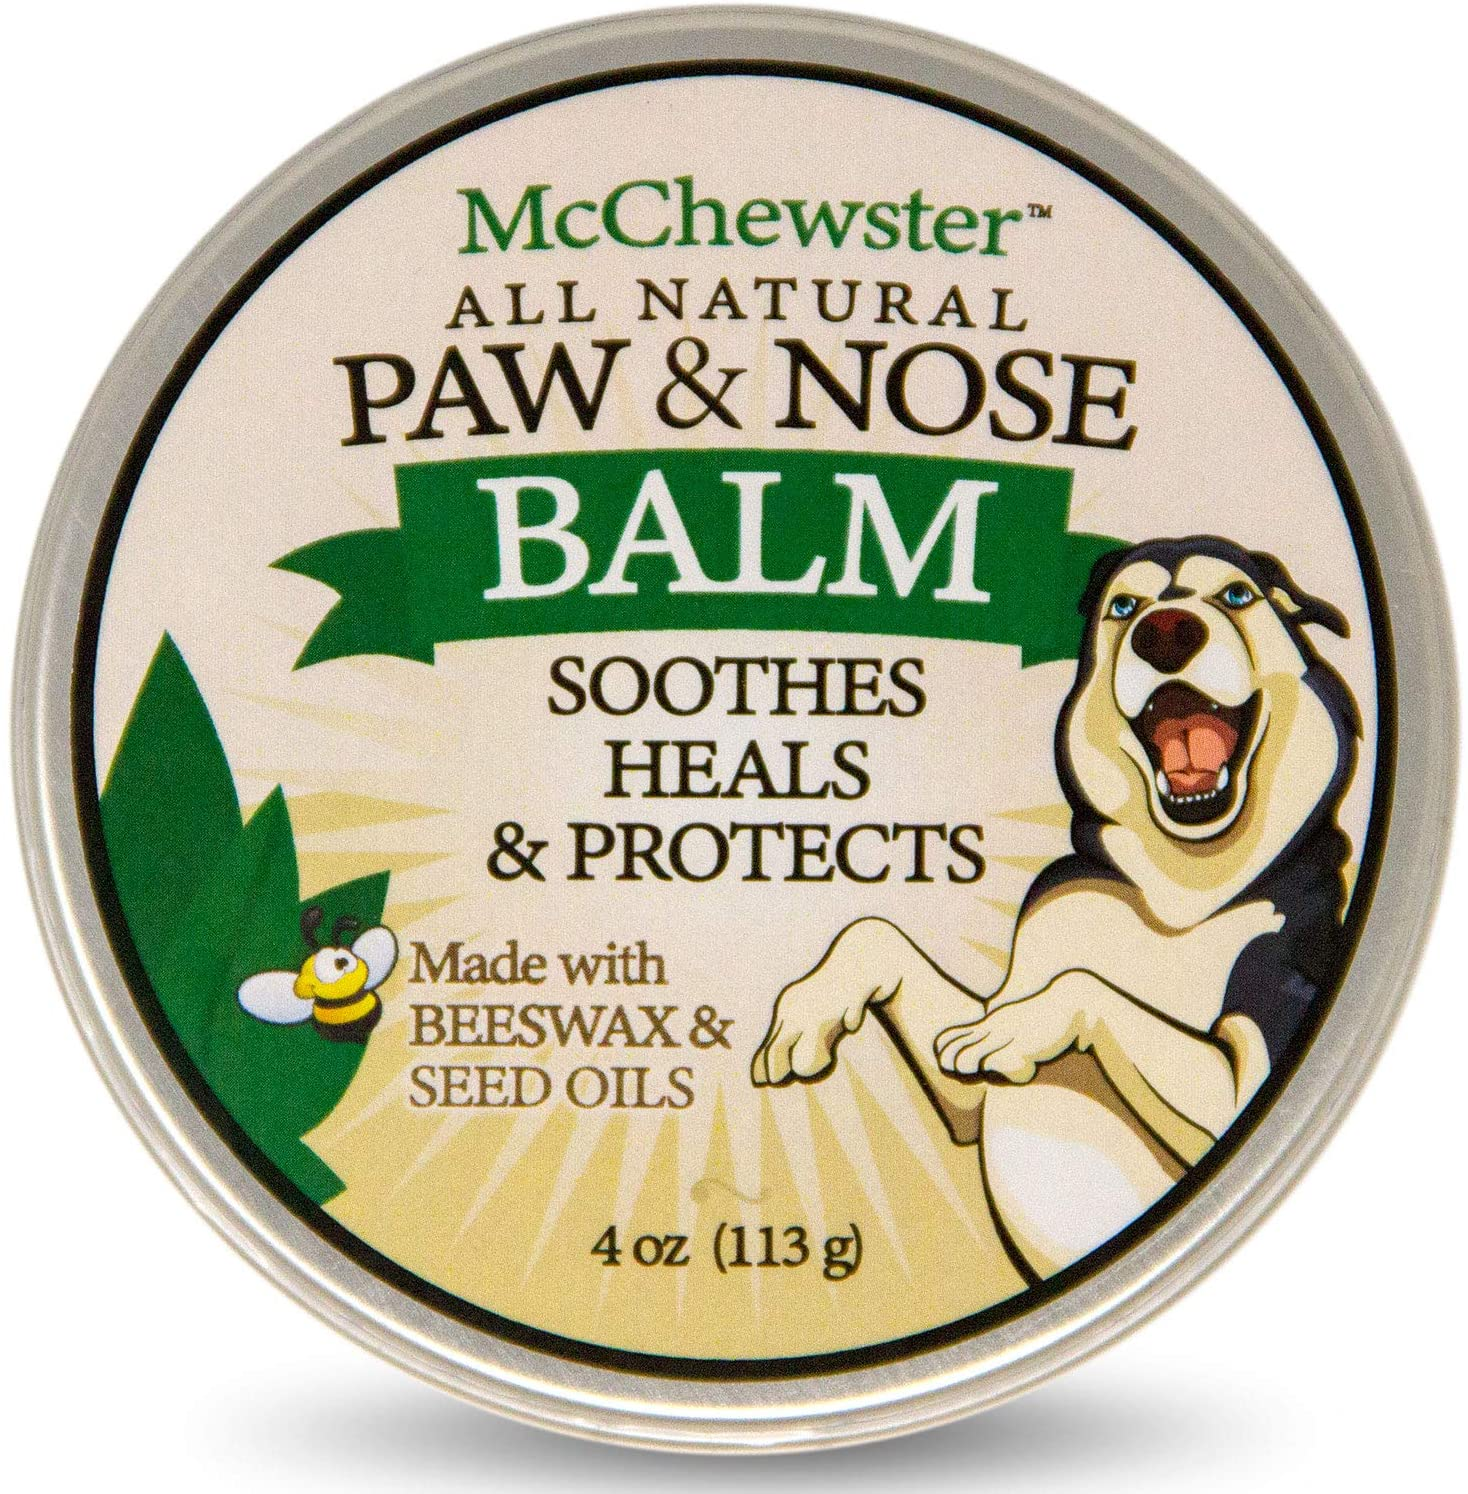 McChewster All Natural Paw & Nose Balm - Paw Cream for Dogs and Cats - 4 oz